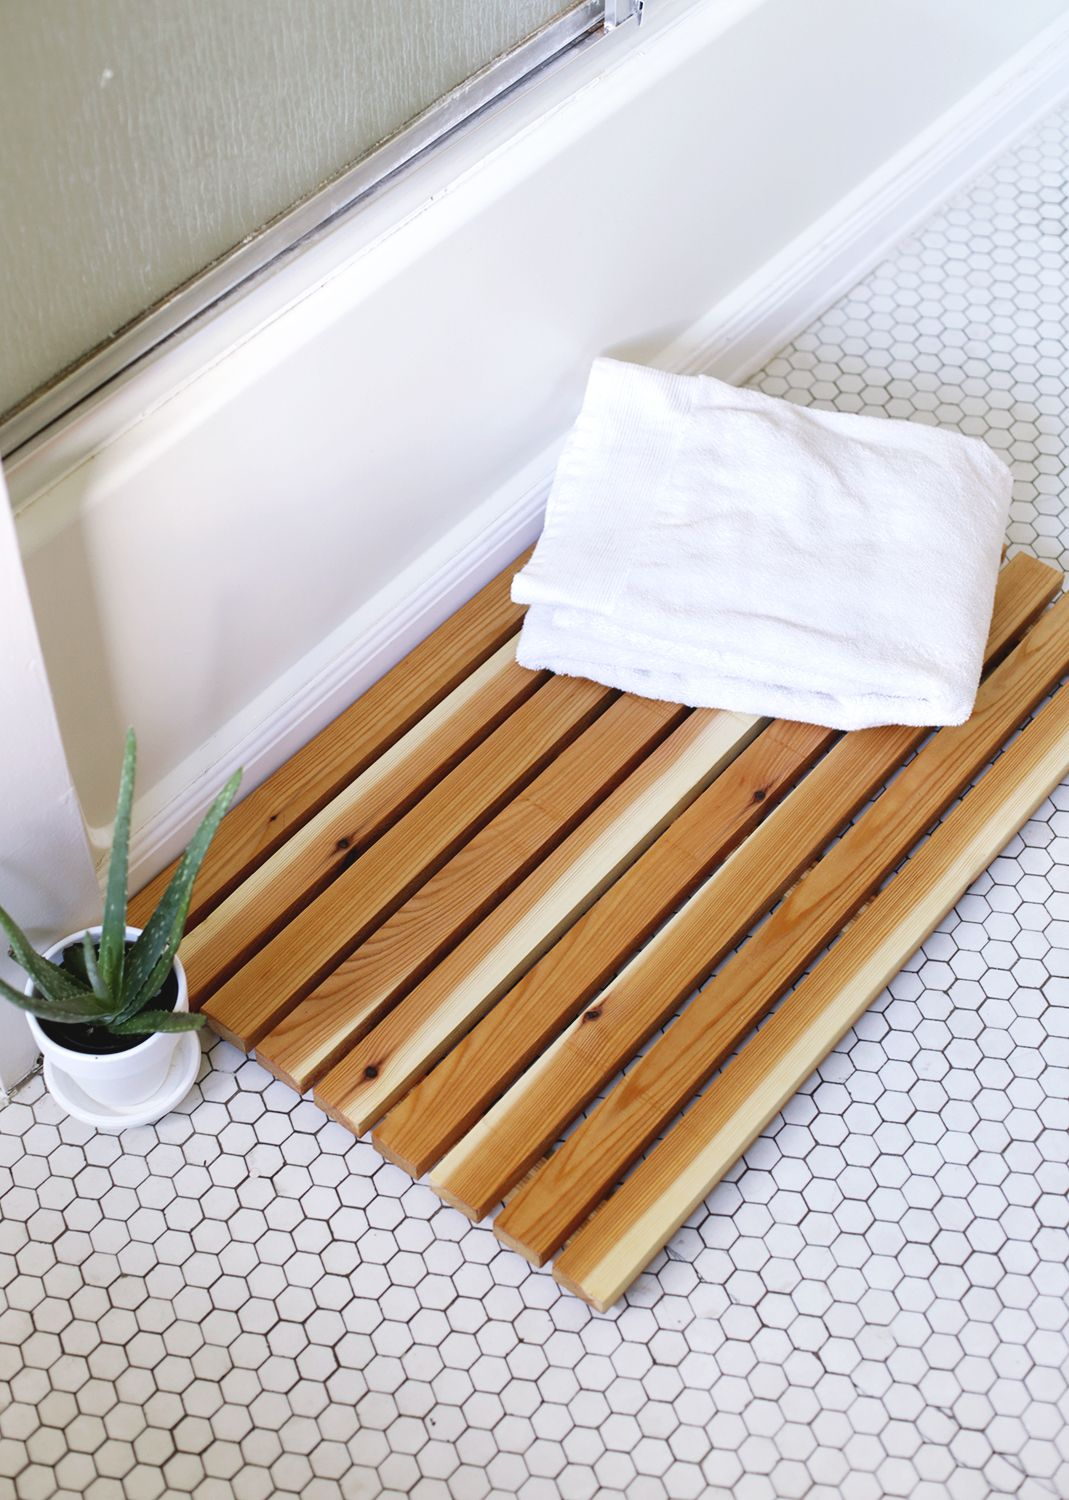 Diy Cedar Bath Mat Cedar Bath Mat Rental Bathroom Bath Mat Diy